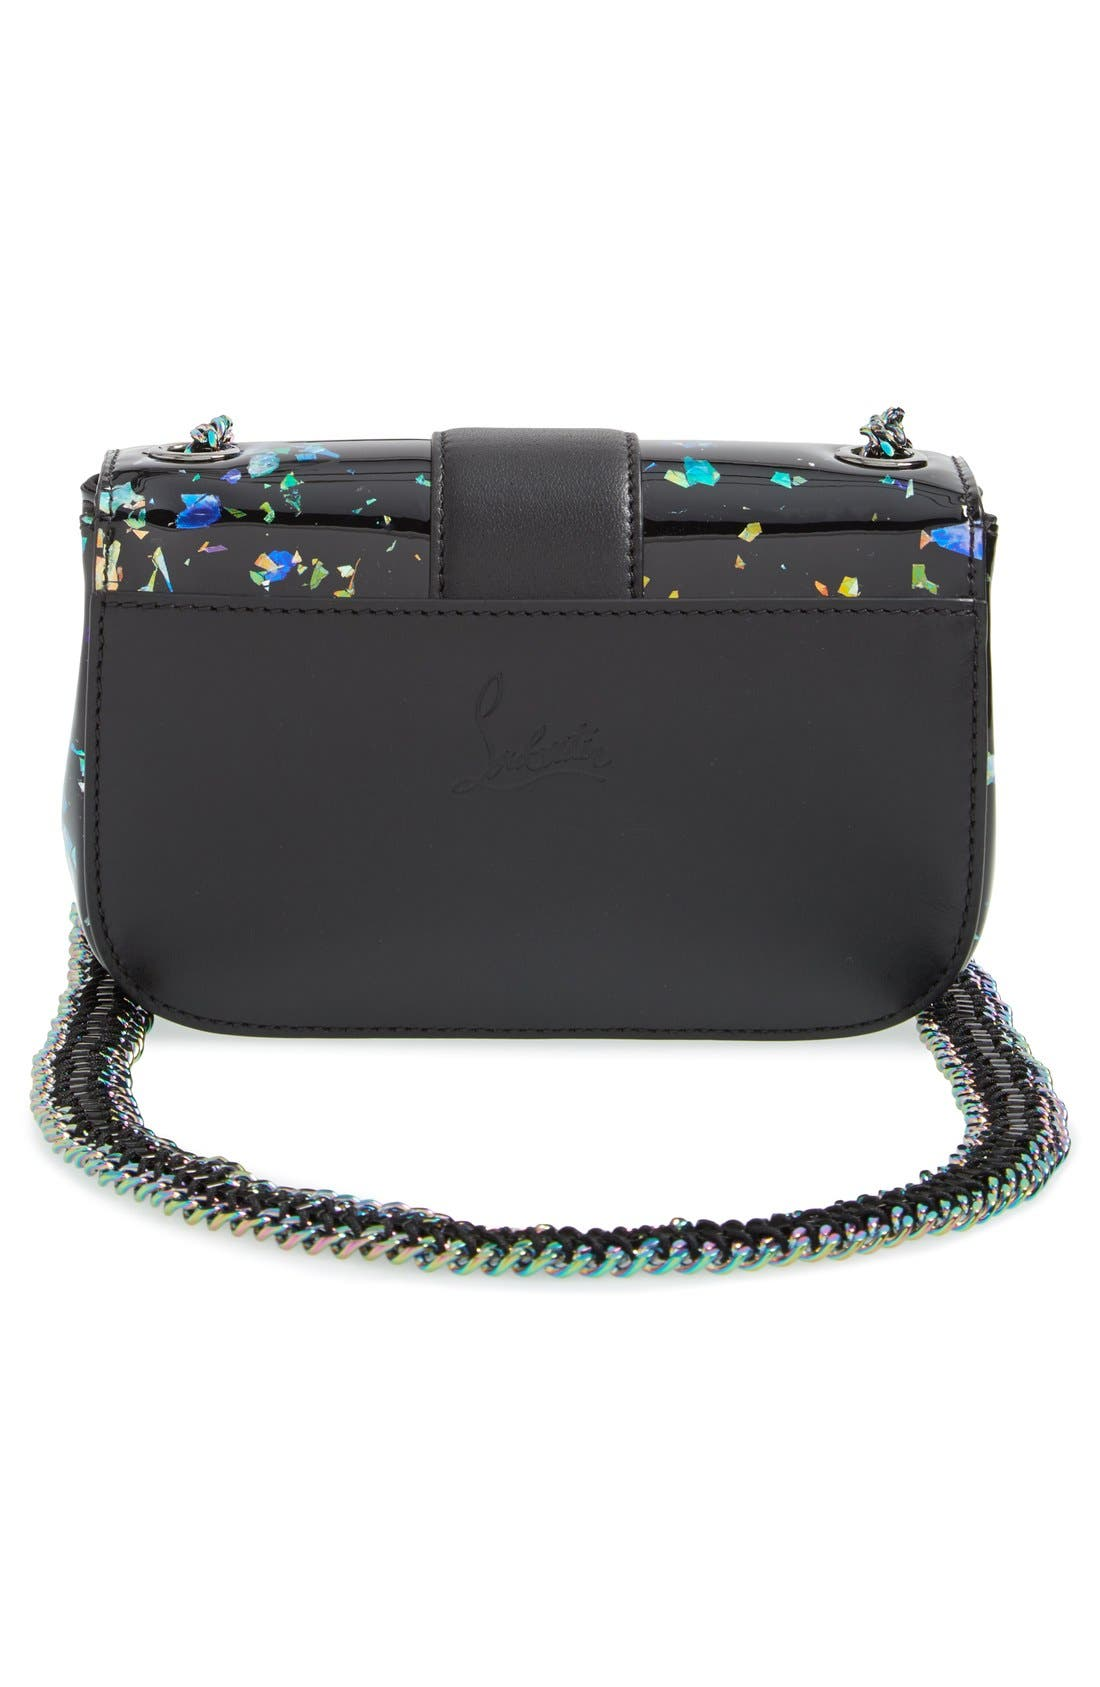 Alternate Image 3  - Christian Louboutin 'Sweety Charity' Patent Leather Shoulder Bag